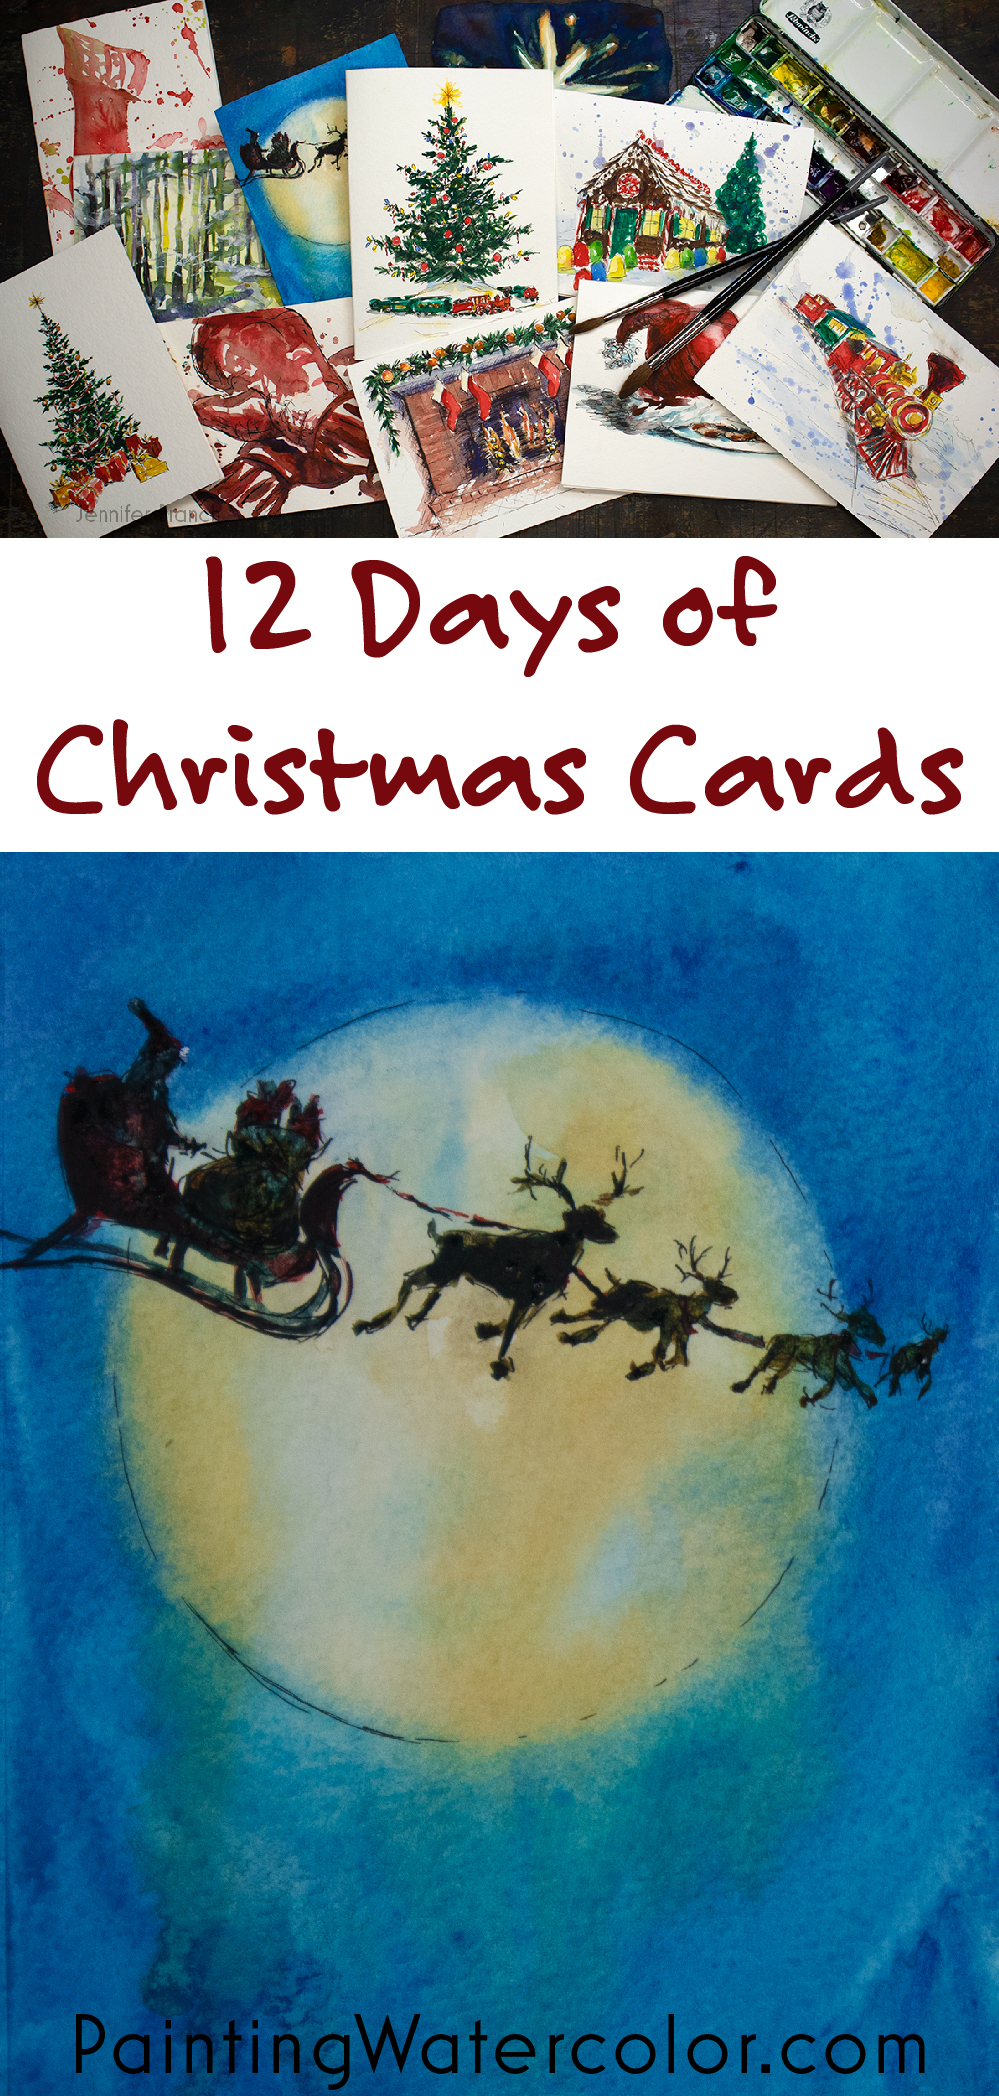 Paint beautiful Christmas cards for your family and friends! In the introduction, I show you all the materials you need to watercolor paint this beautiful Moon with Santa card.